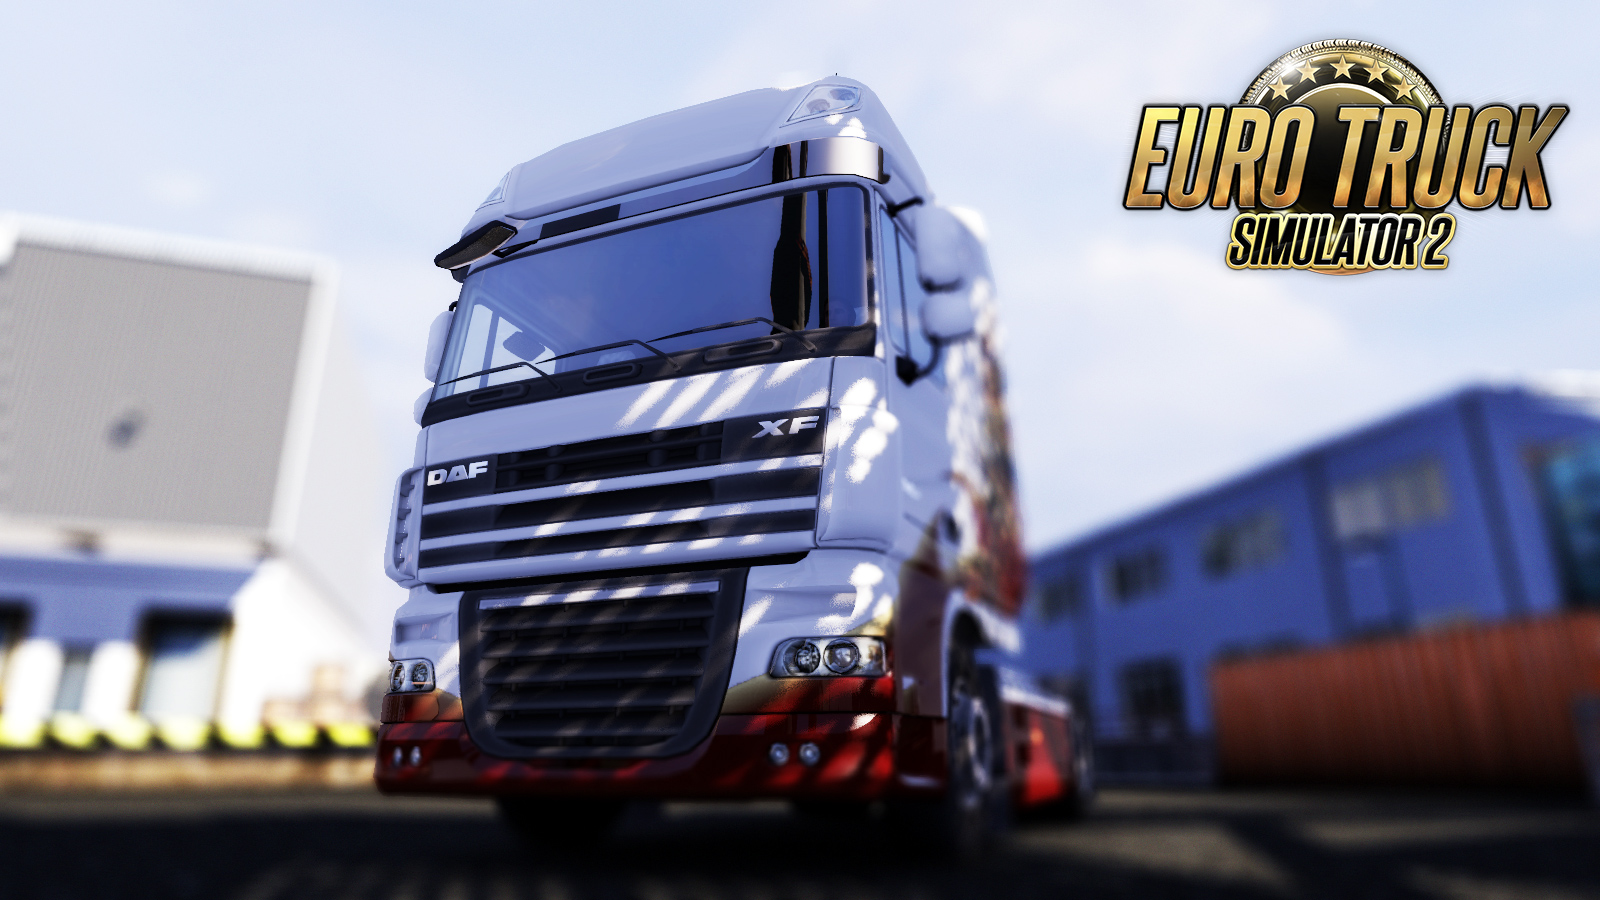 DAF Trucks  Ing To Euro Truck Simulator 2